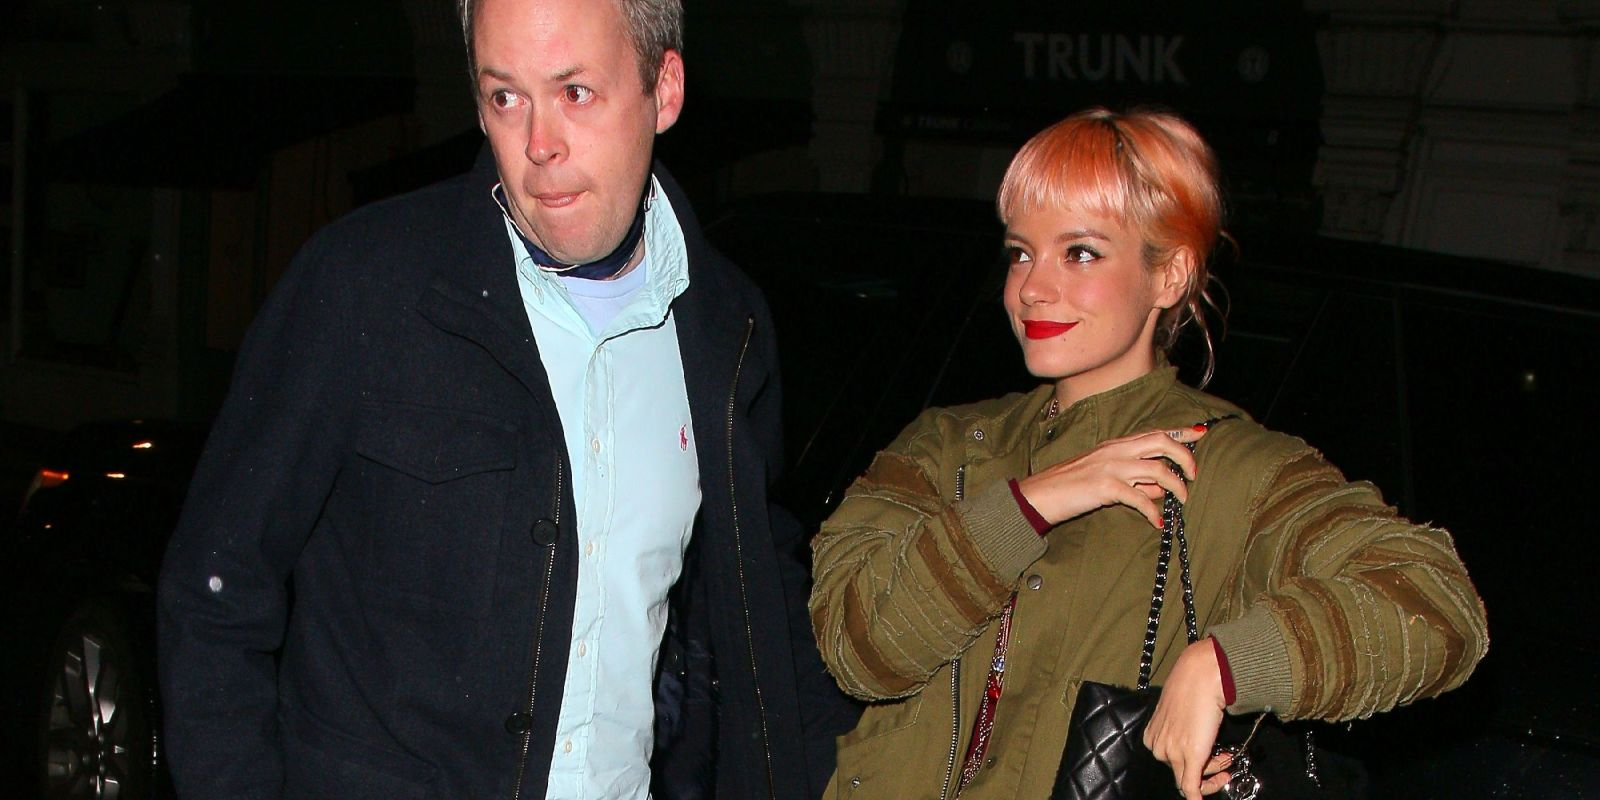 Lily Allen admits to cheating on her husband